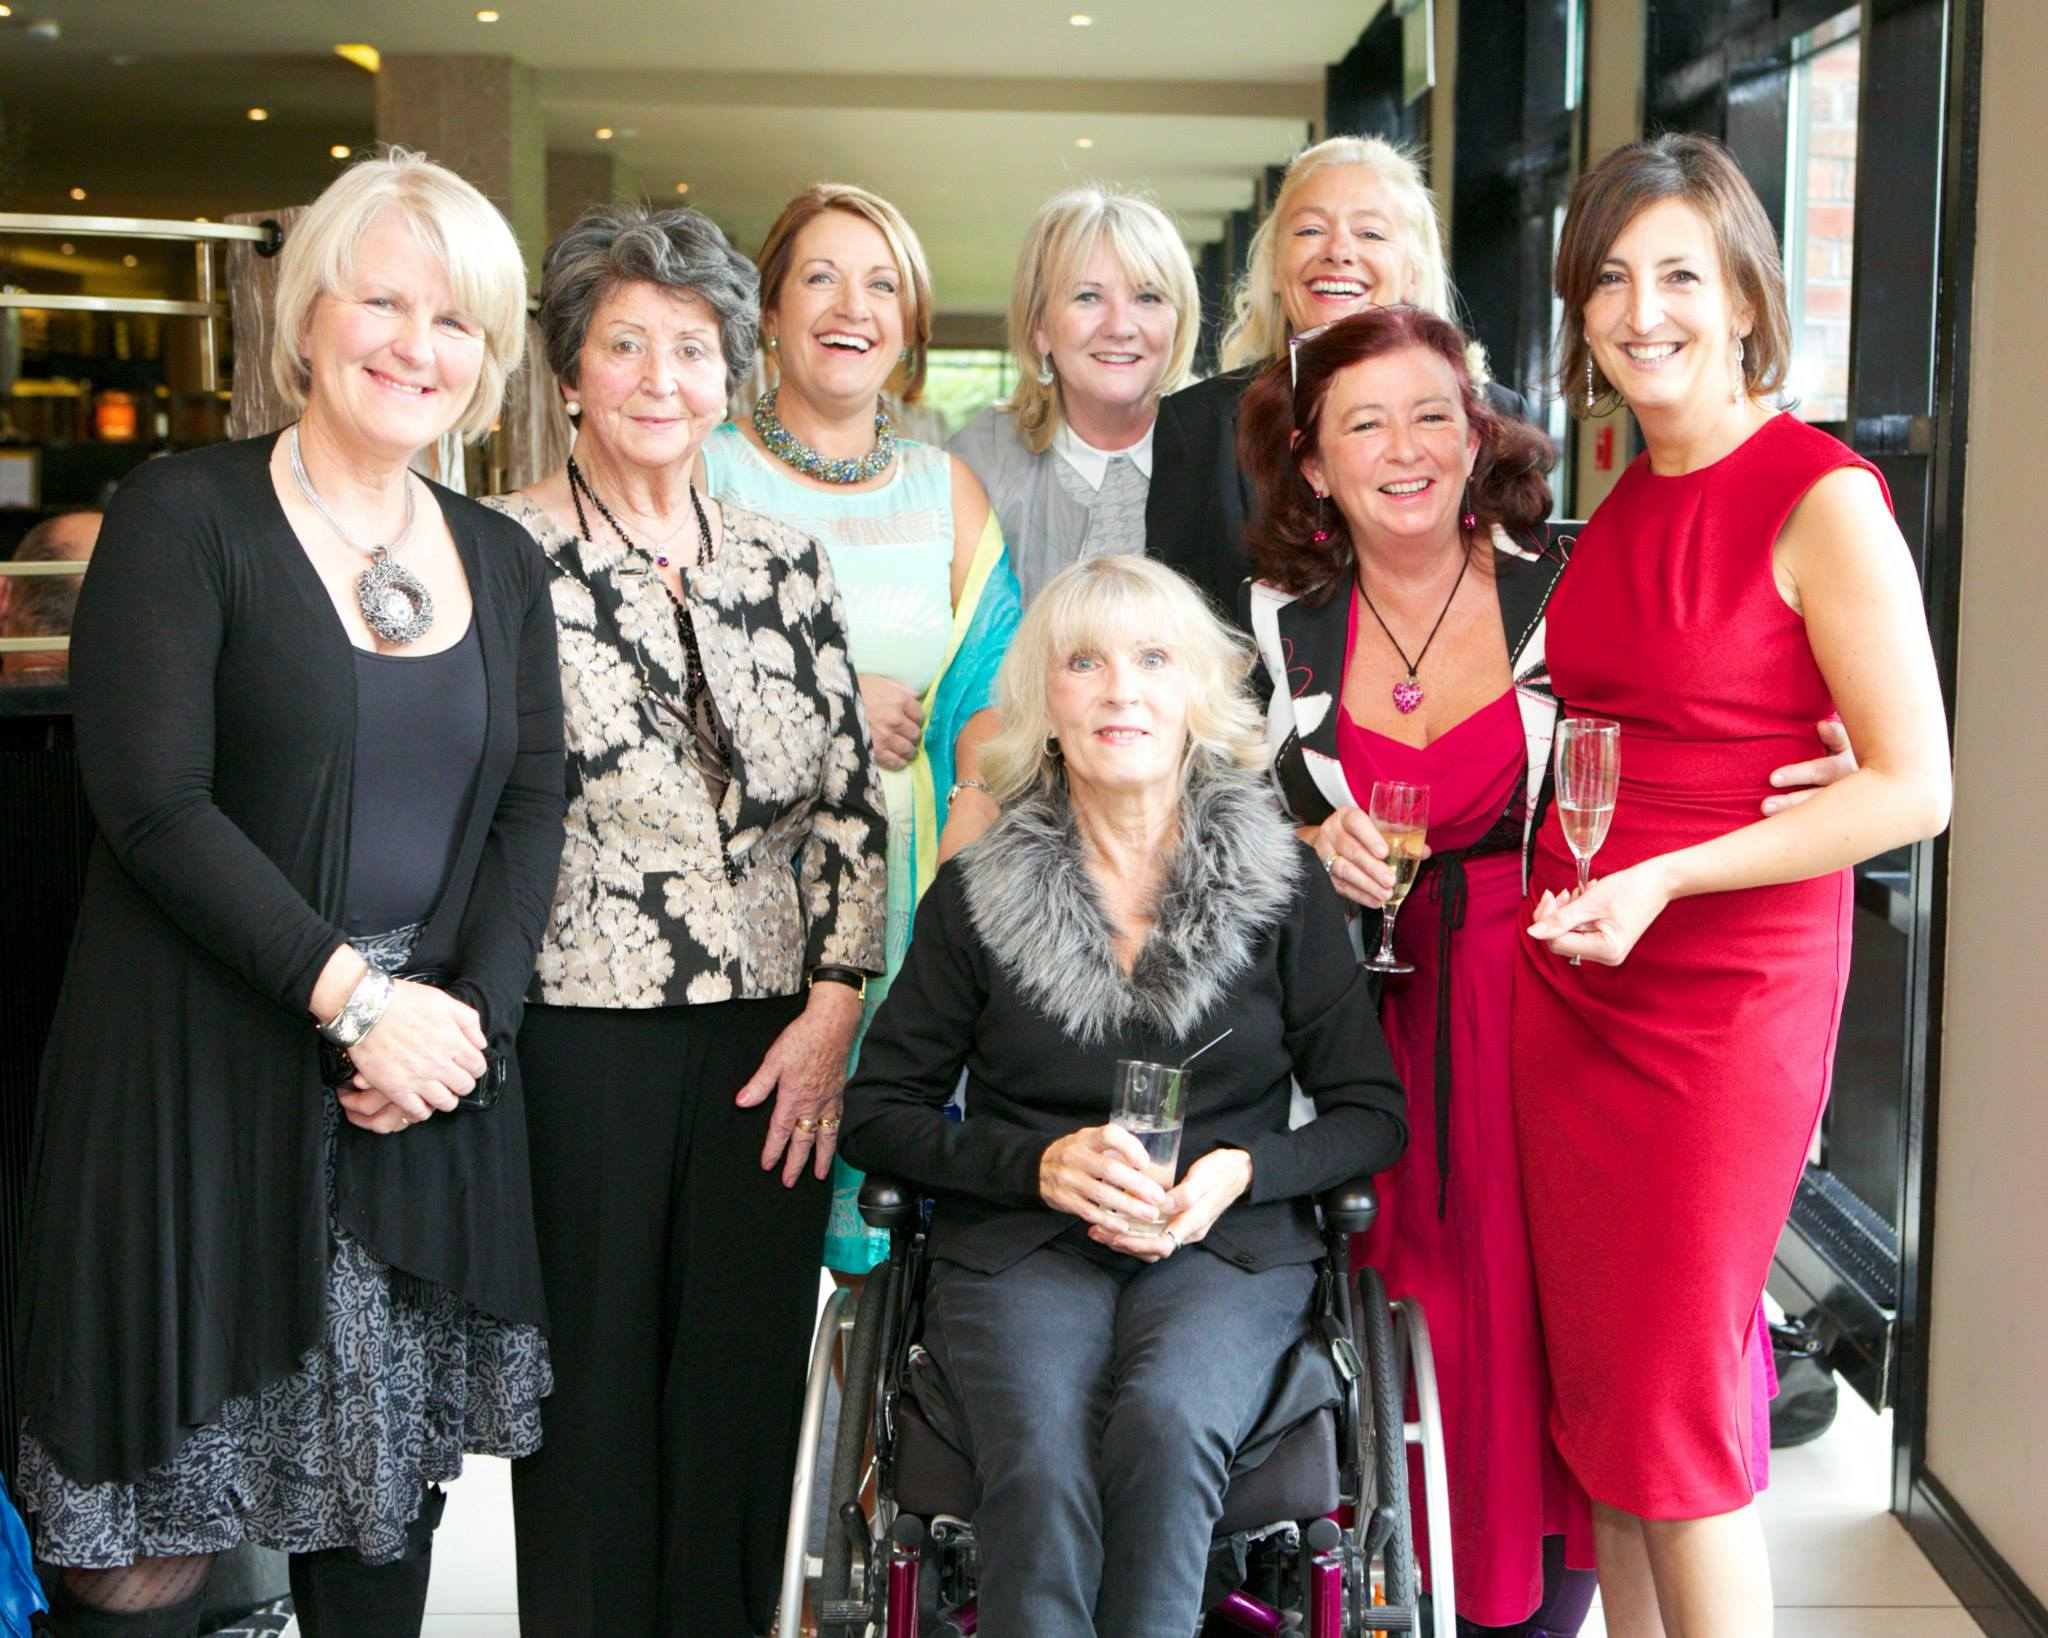 Pictured at the 11th Annual Aer Lingus Autumn Lunch in aid of Cork ARC are from left: Mari Riese, Mari Cournan, Maureen Mortimer, Jan Power, Martha Pringle, Sue Horgan, Carol Anne Crosbie and Maria O'Mahony all from Kinsale. Photo. Donagh Glavin